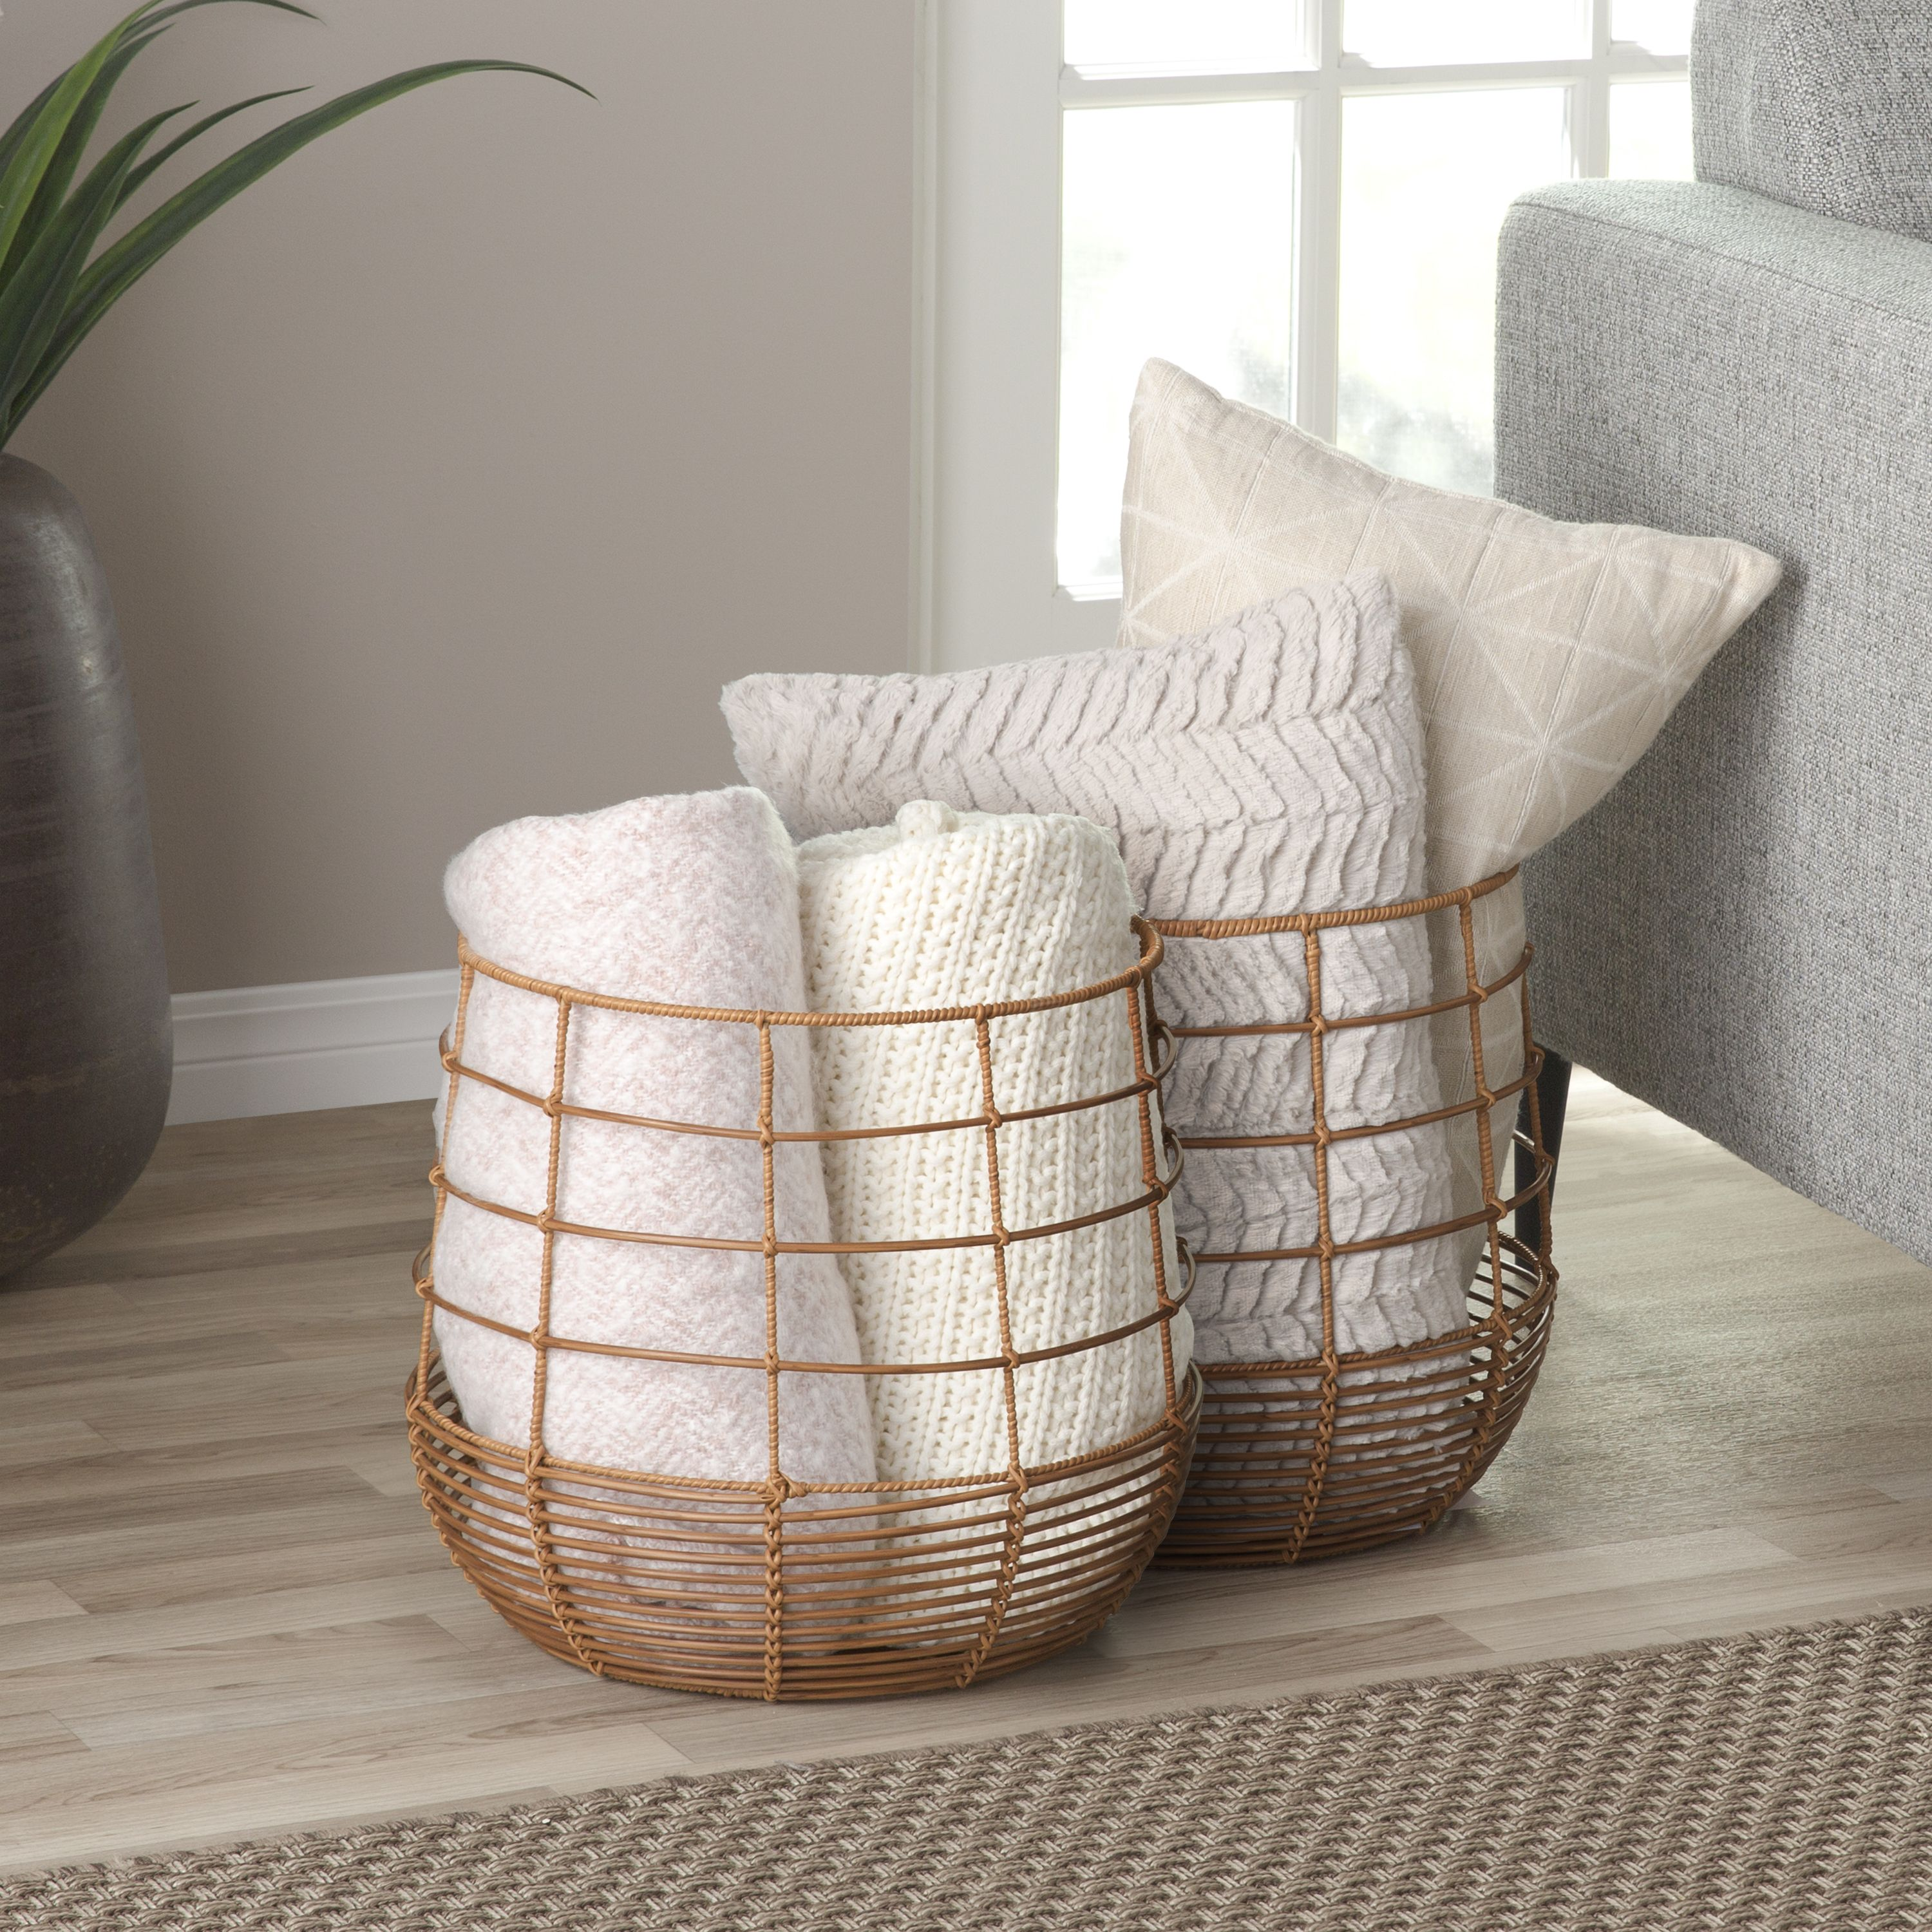 Modrn Naturals Floppy Seagrass Laundry Basket With Lid With Leather Handle In 2020 Rattan Basket Rattan Bamboo Basket